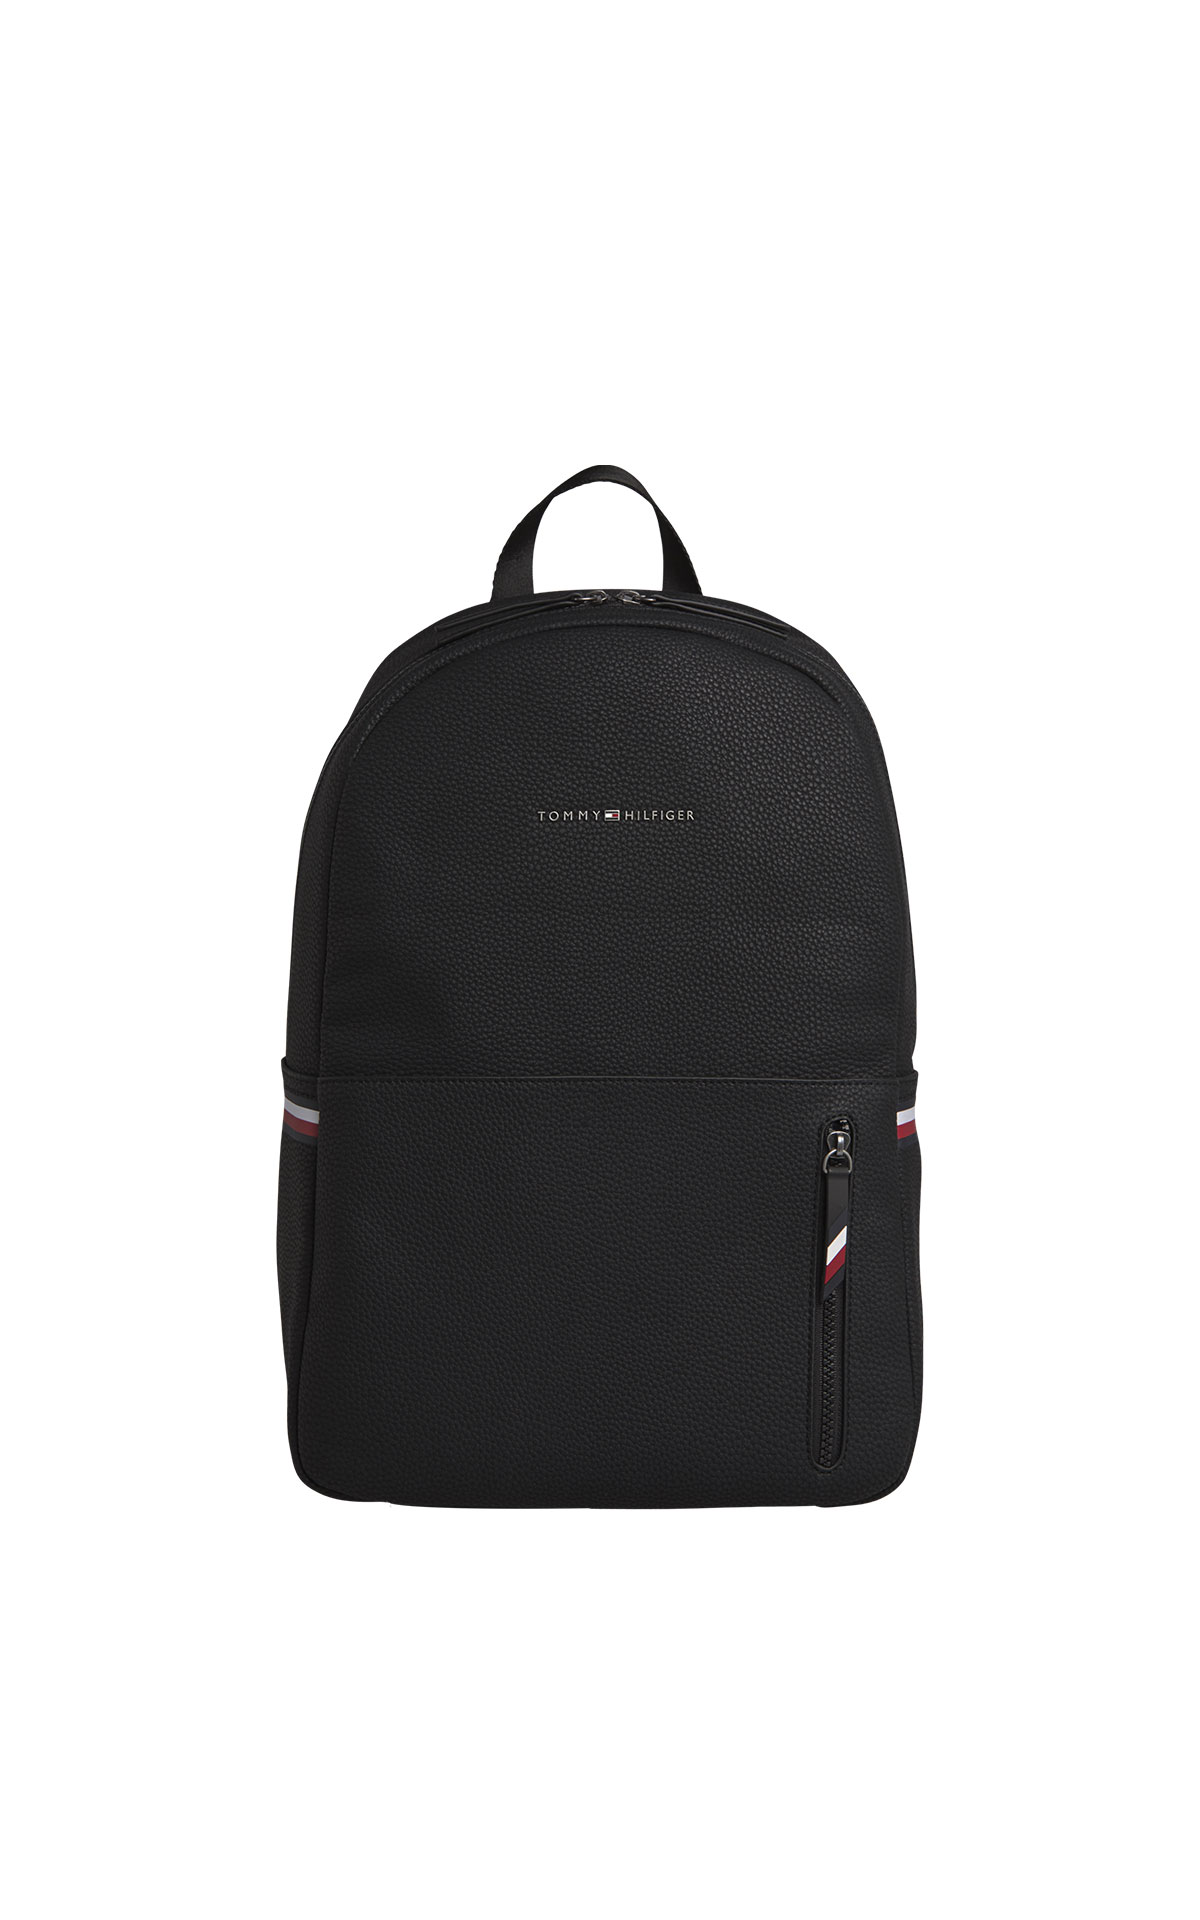 Tommy hilfiger essential backpack at The Bicester Village Shopping Collection